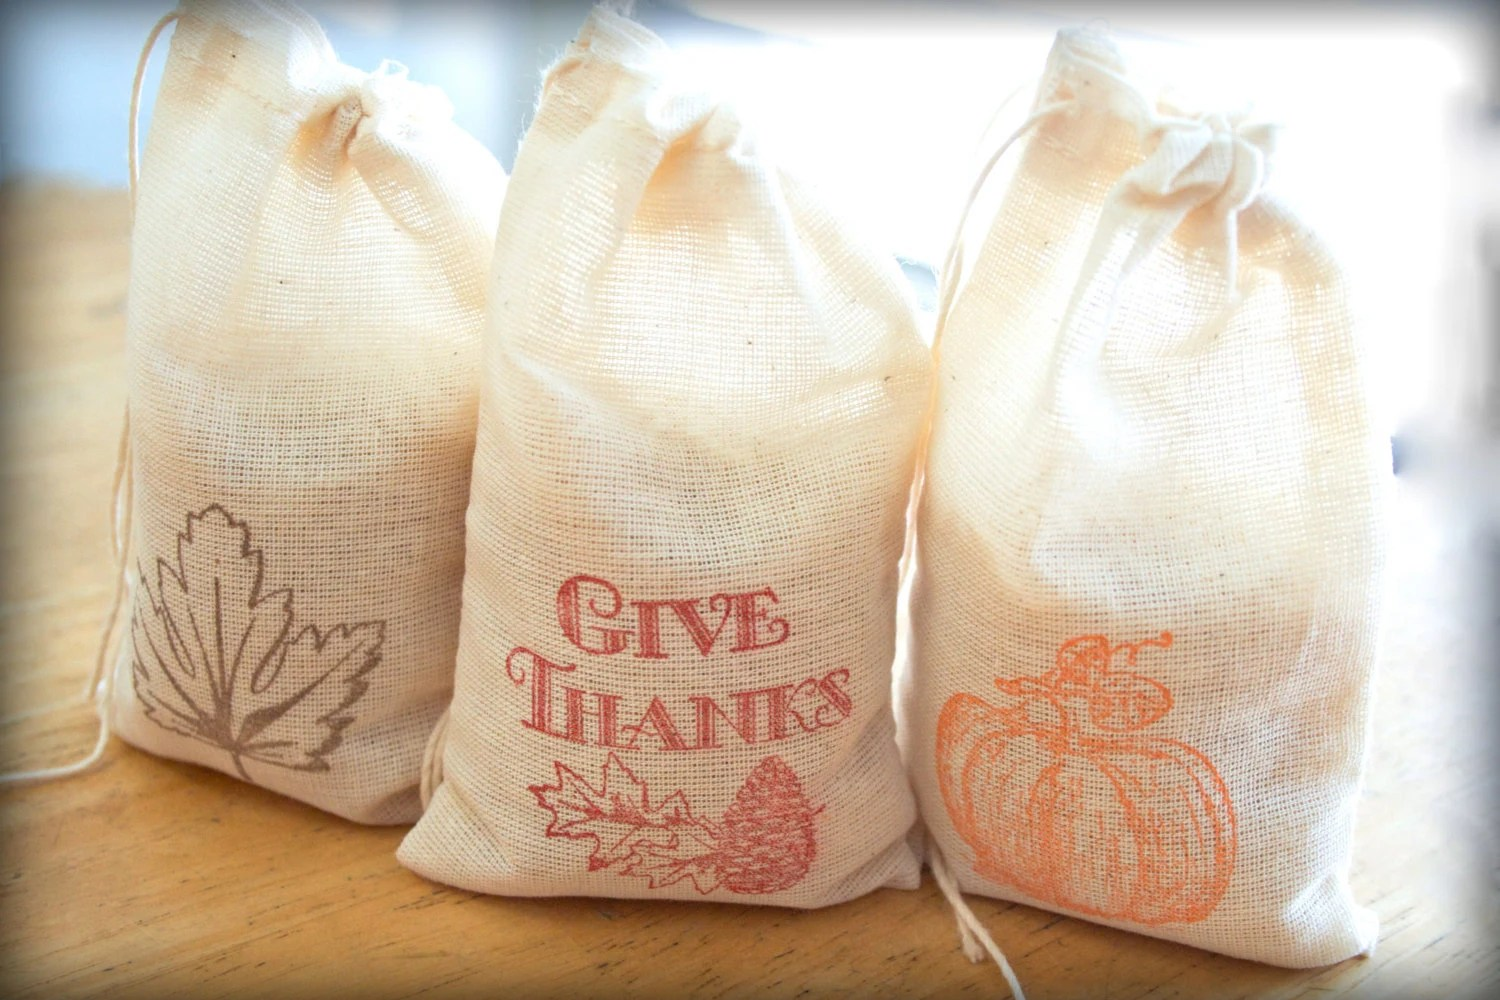 Thanksgiving Fall Set muslin cotton favor bag 15 3X5 with stamp gift sack thanksgiving party goodies treat bag - CherryDreamsCreation